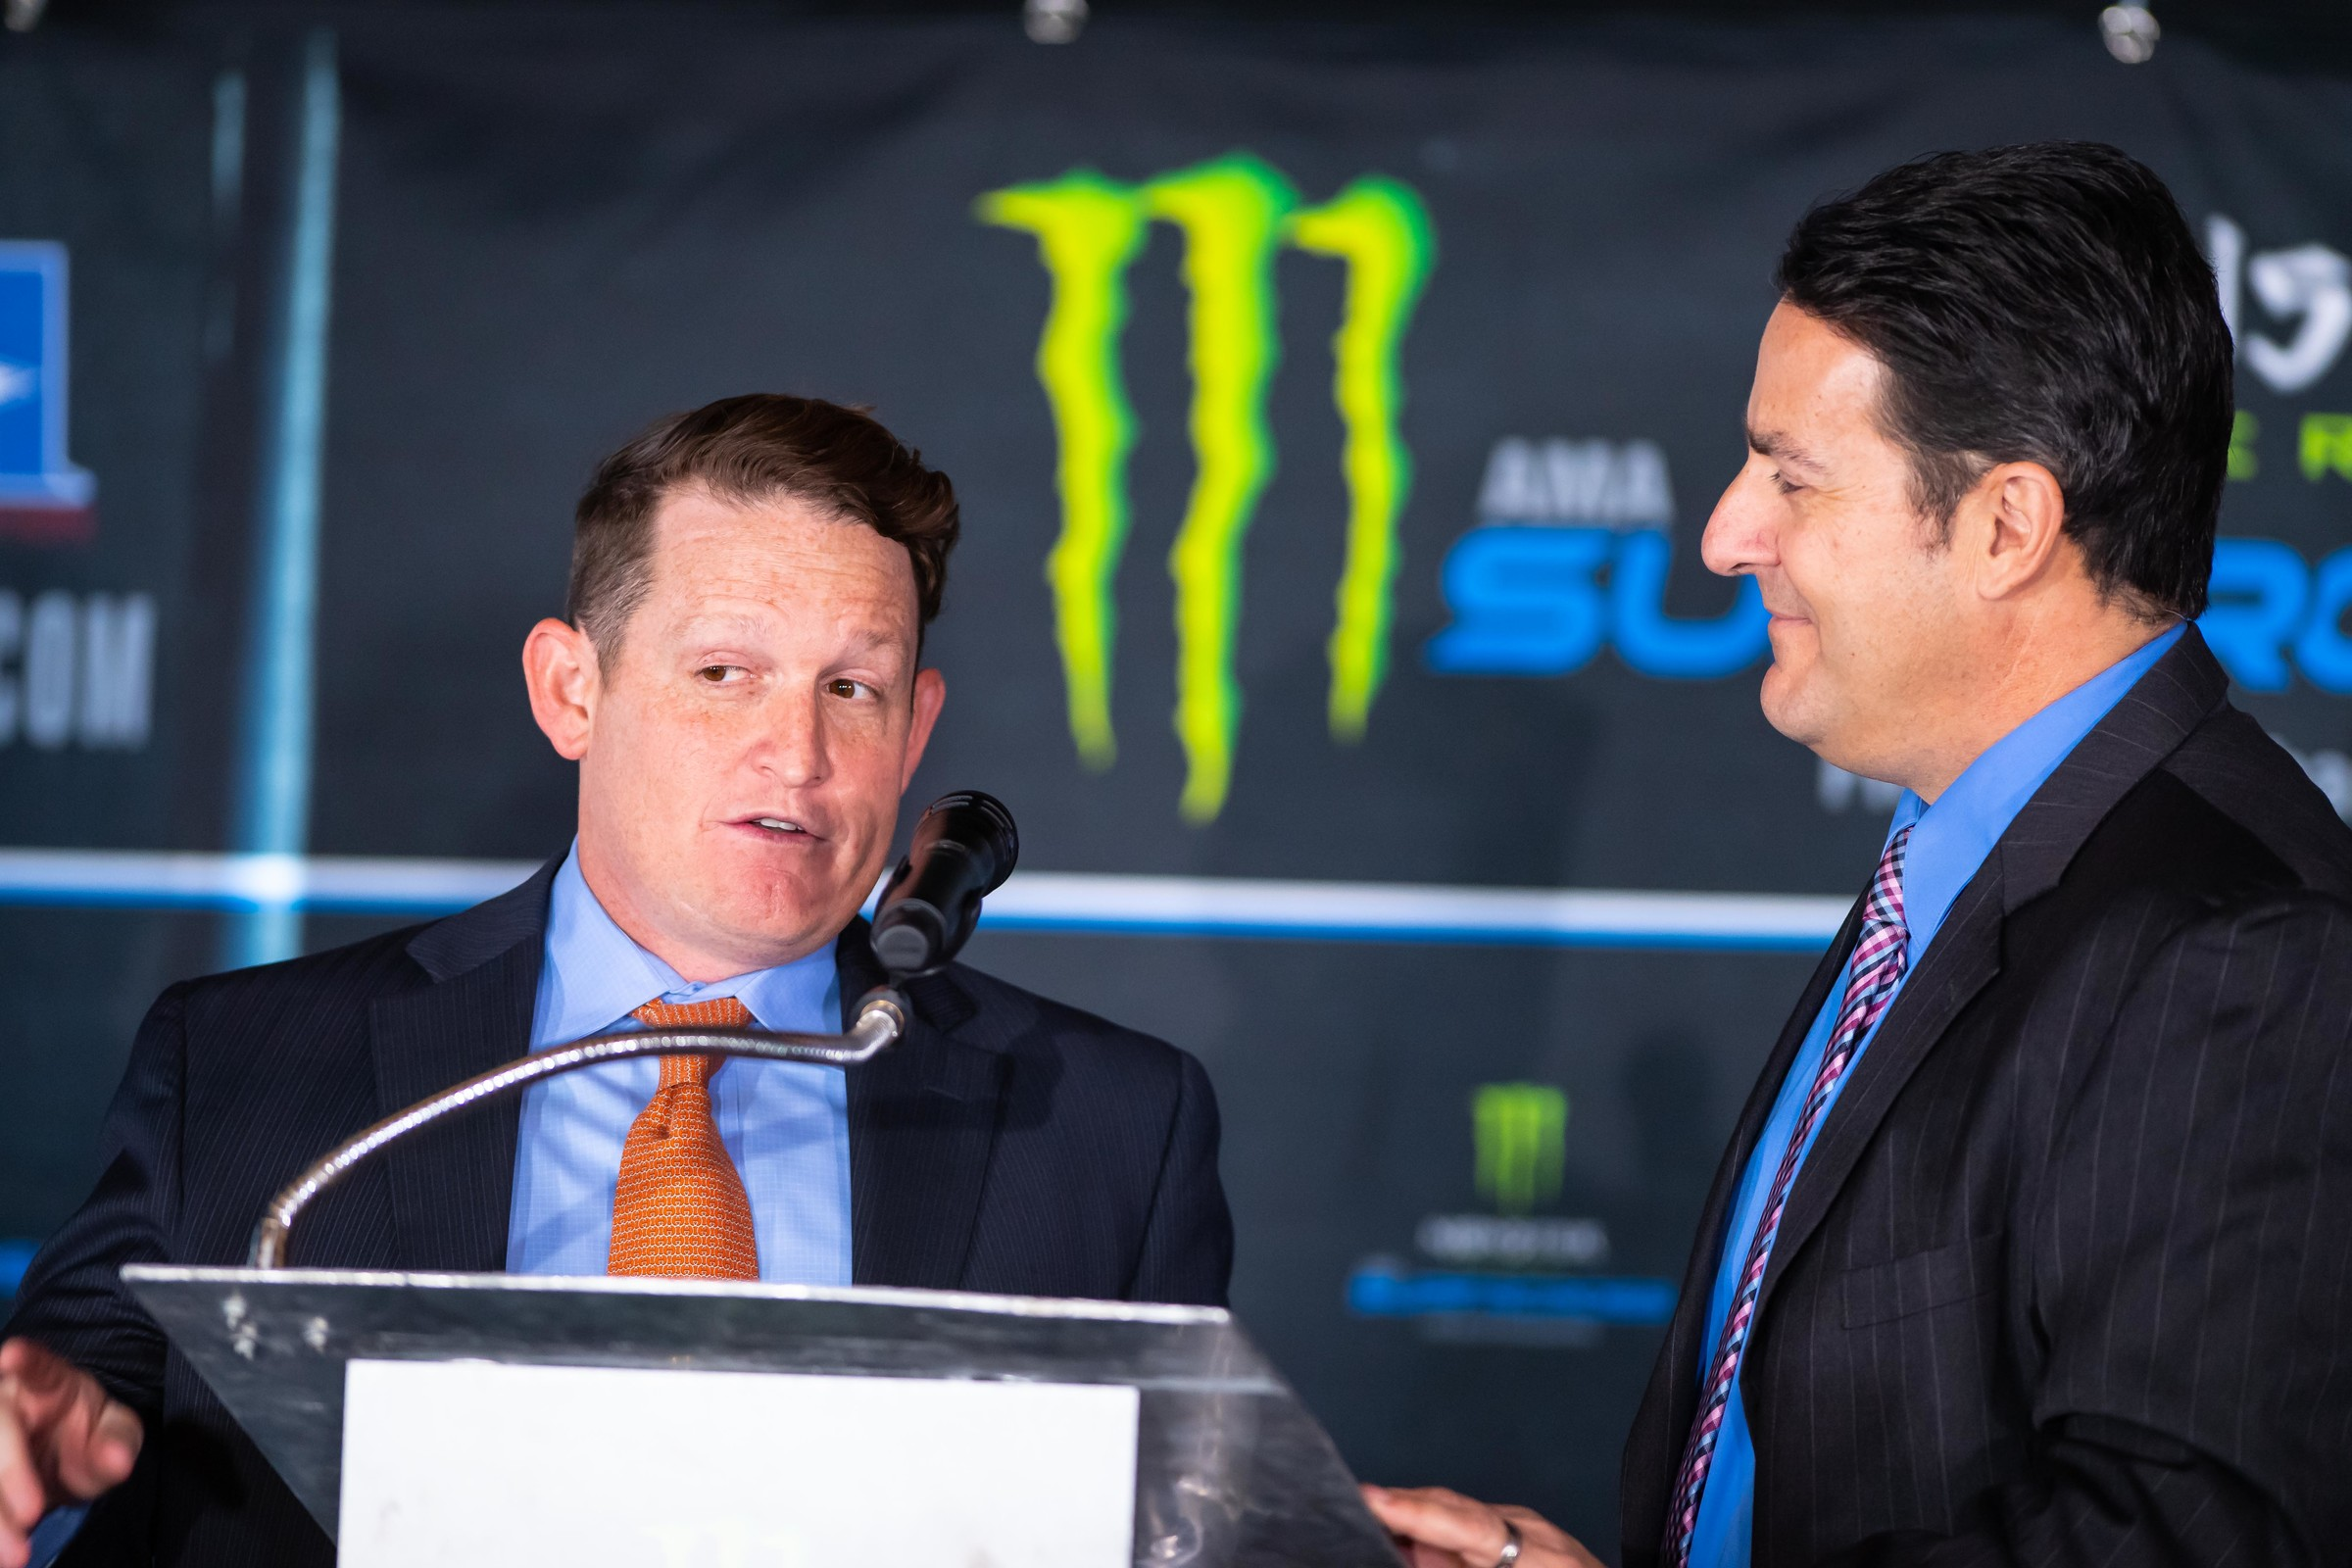 Ricky Carmichael, who will serve as the color analyst for the 2019 Monster Energy AMA Supercross, speaks at the press conference.